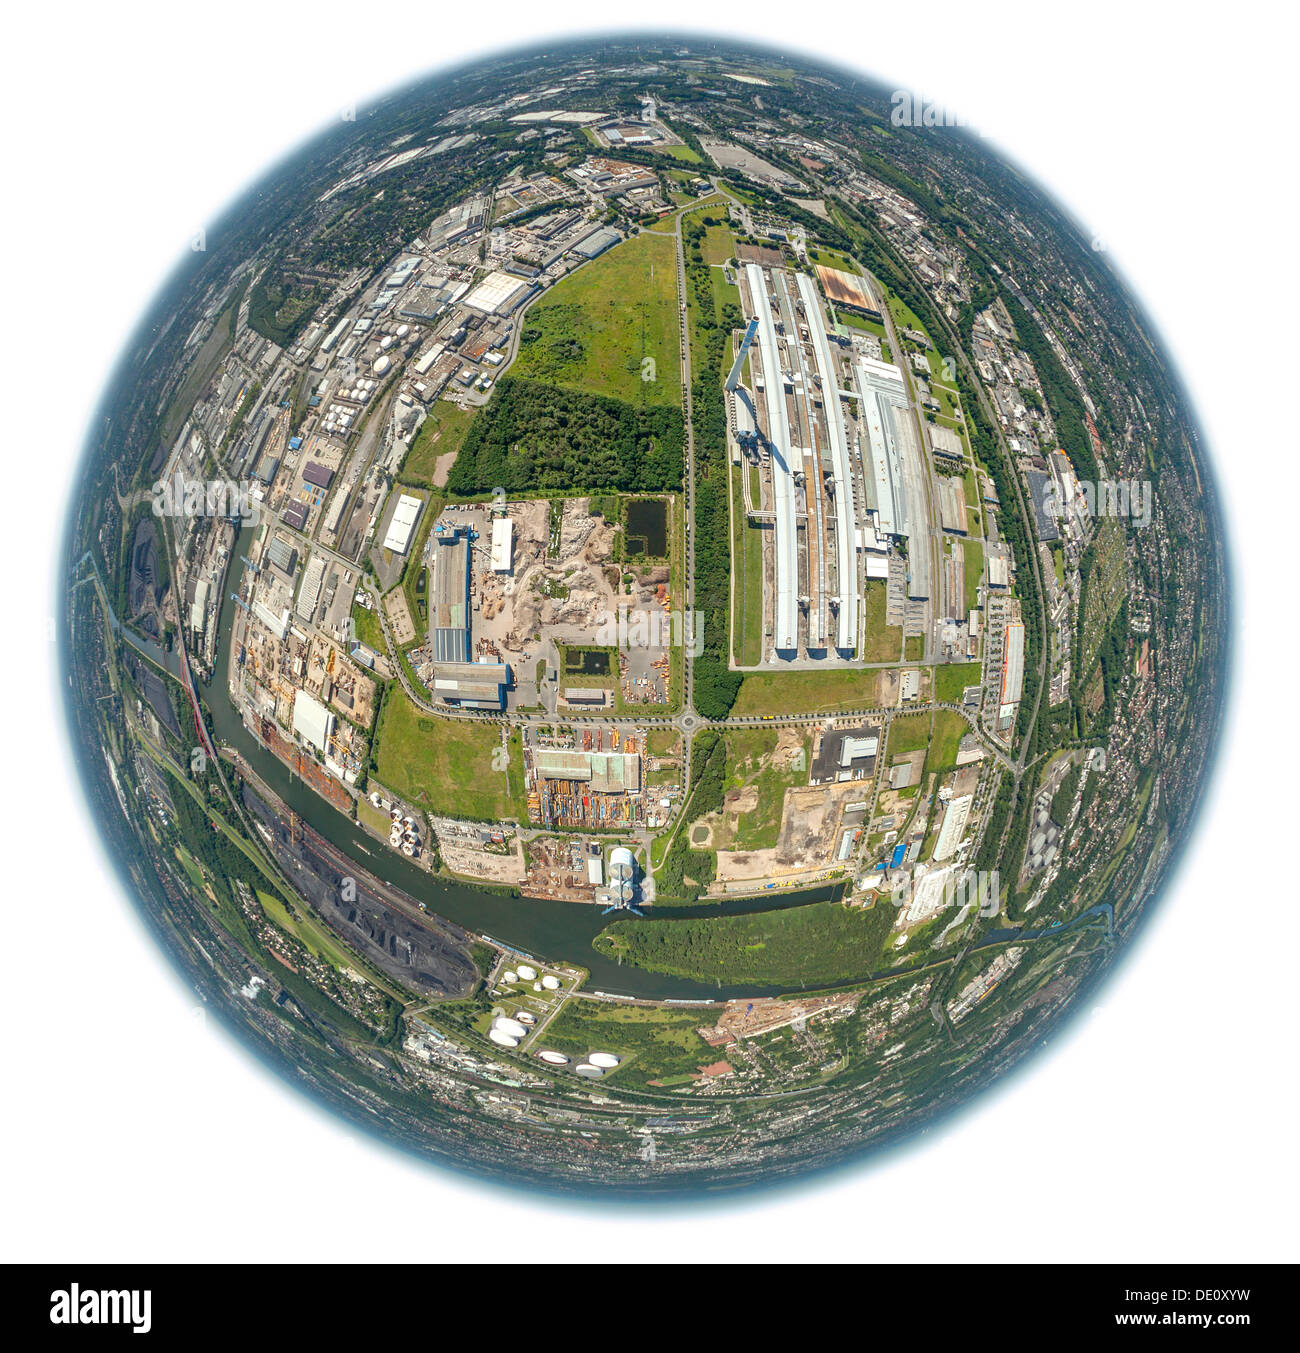 Aerial view, aluminium smelting plant, Econova industrial estate, Bergeborbeck, Essen, Ruhr area, North Rhine-Westphalia - Stock Image